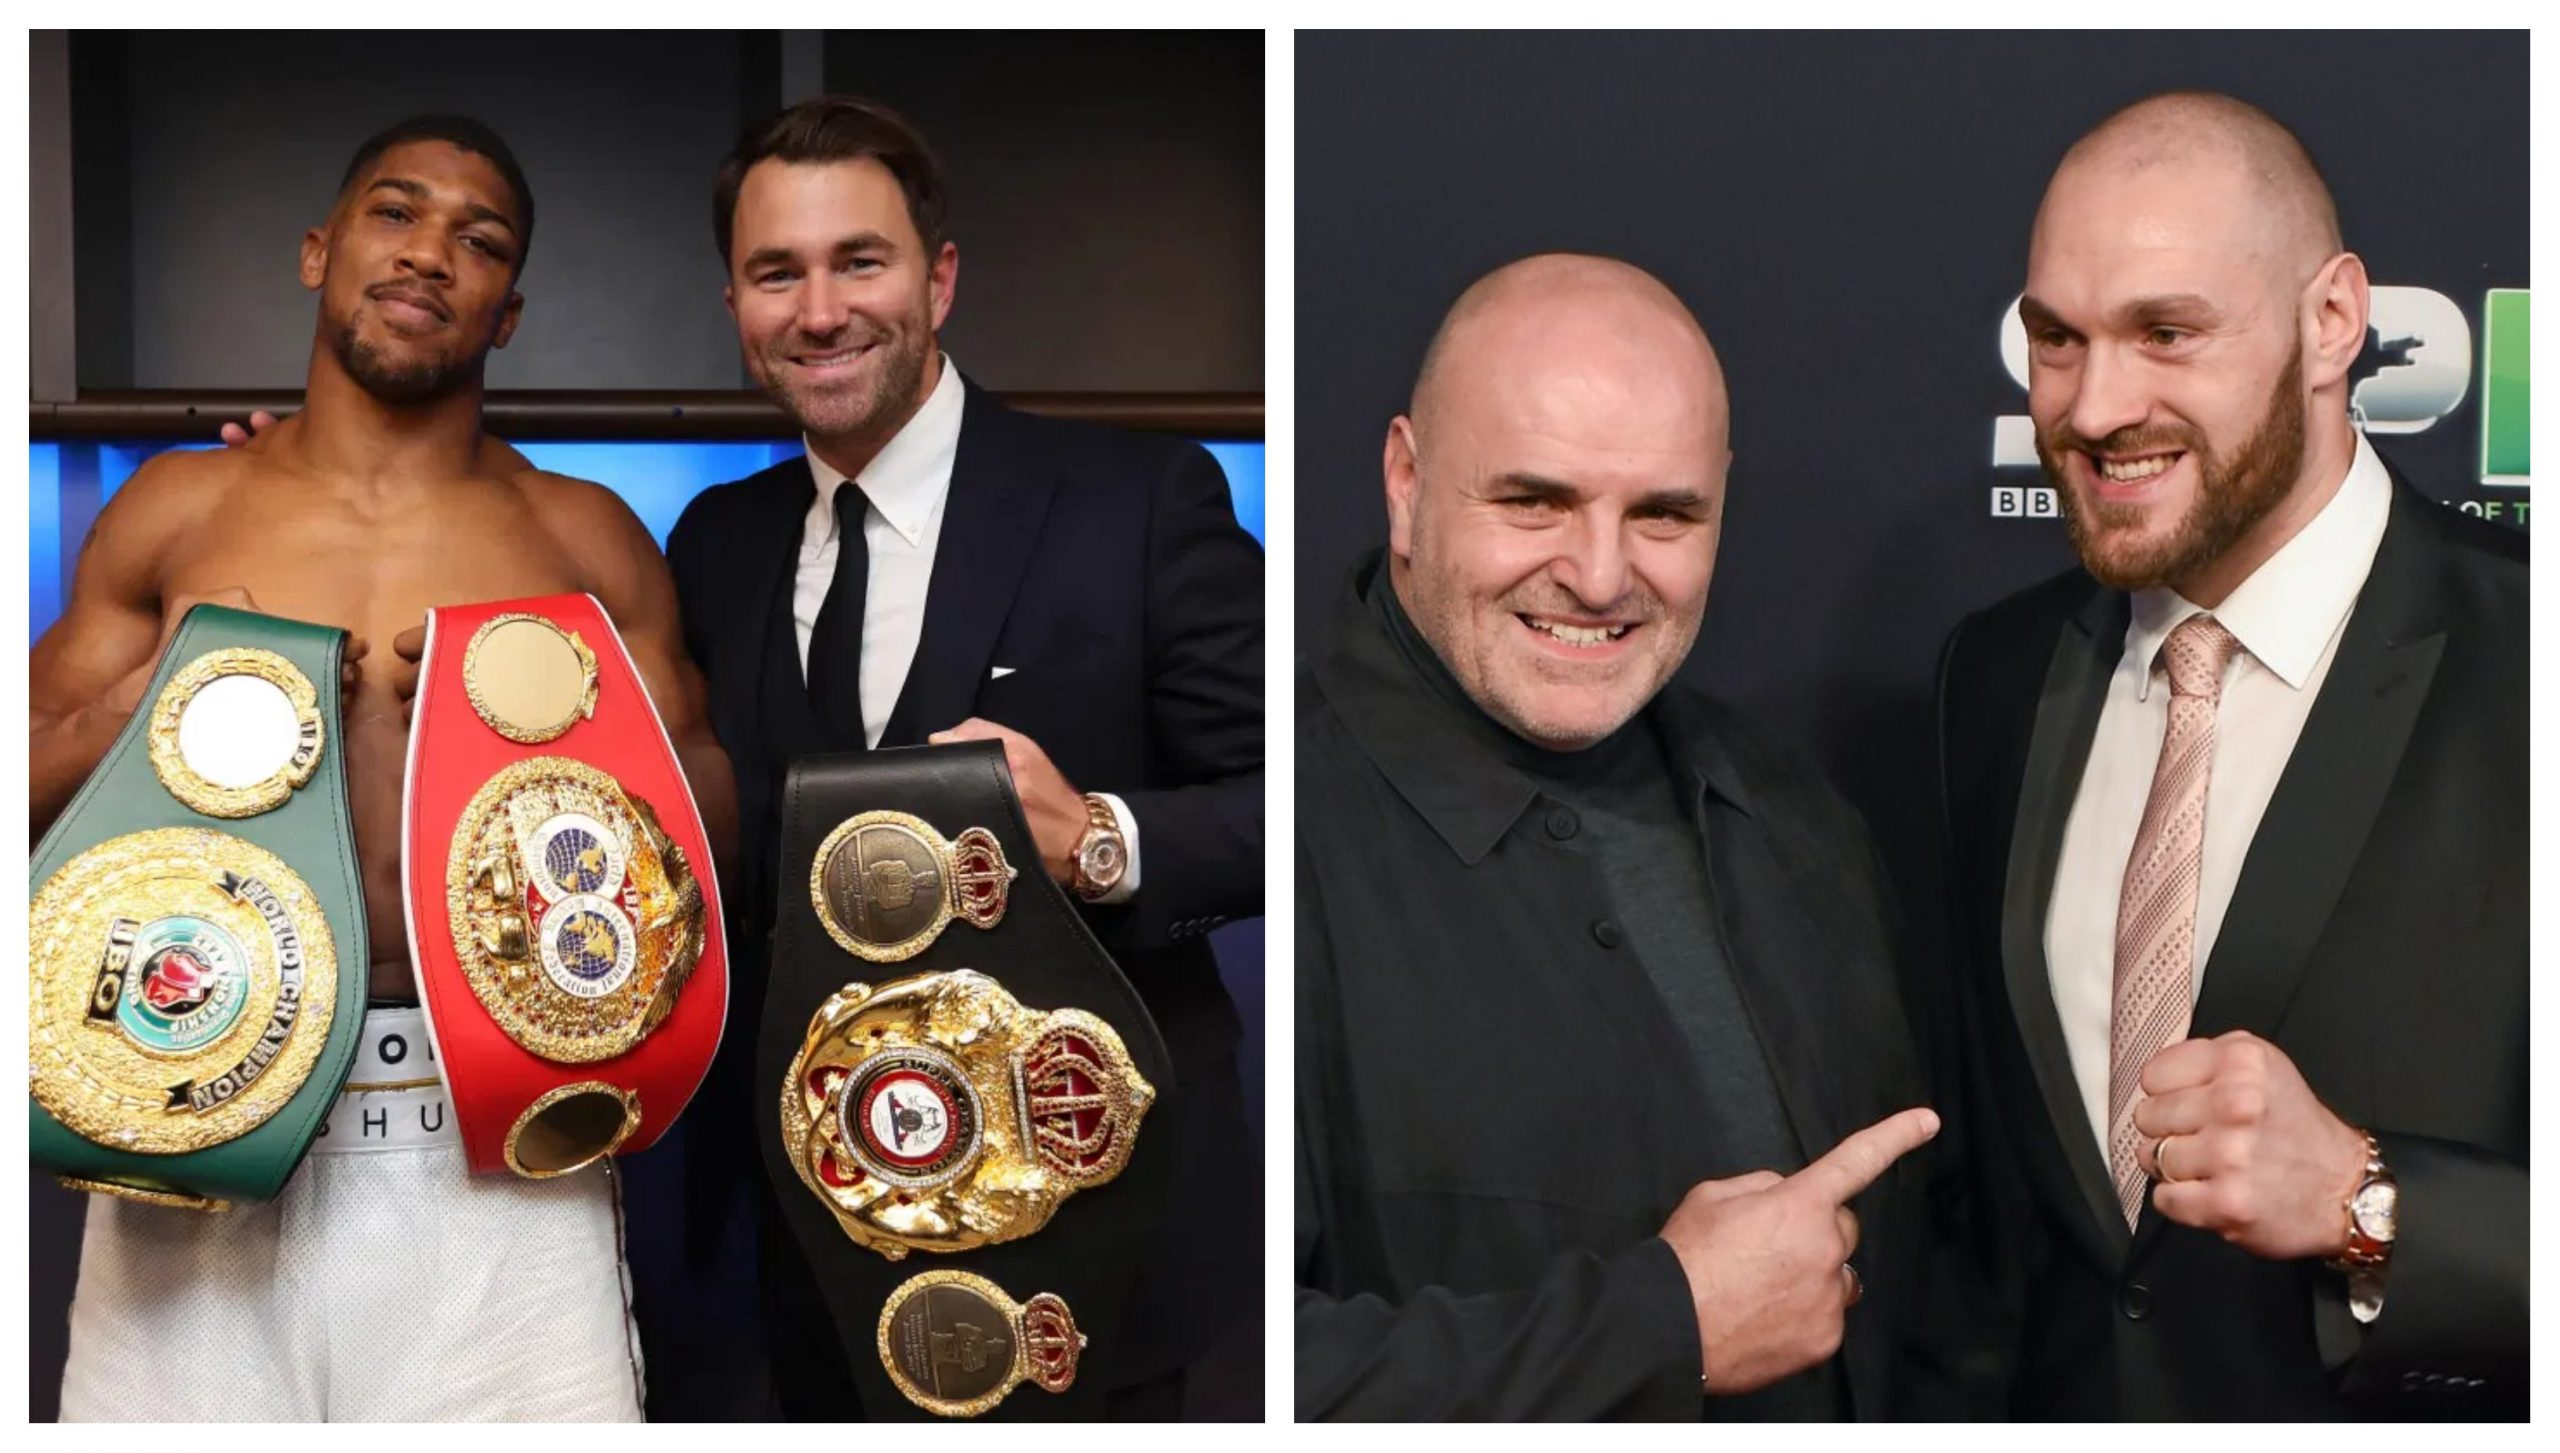 Eddie Hearn responds to Tyson Fury's father for being pessimistic about Anthony Joshua fight - THE SPORTS ROOM